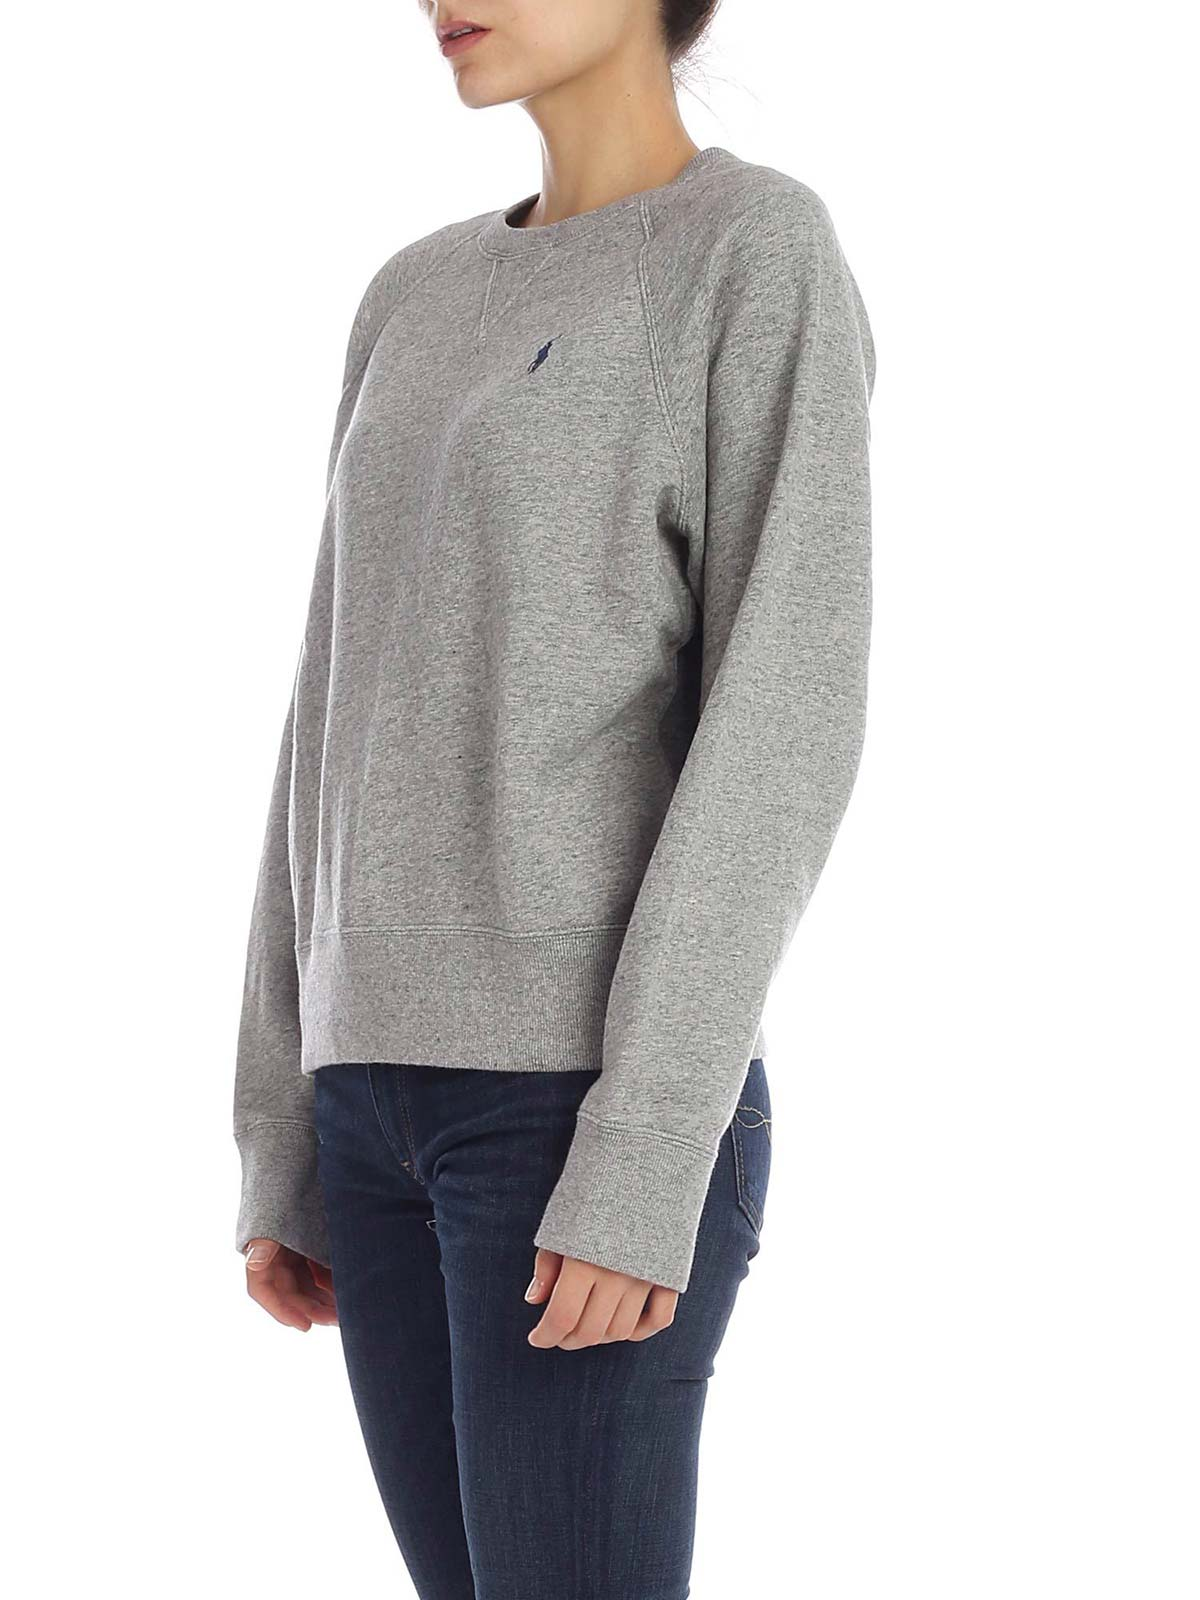 Picture of POLO RALPH LAUREN | Women's Crewneck Sweatshirt